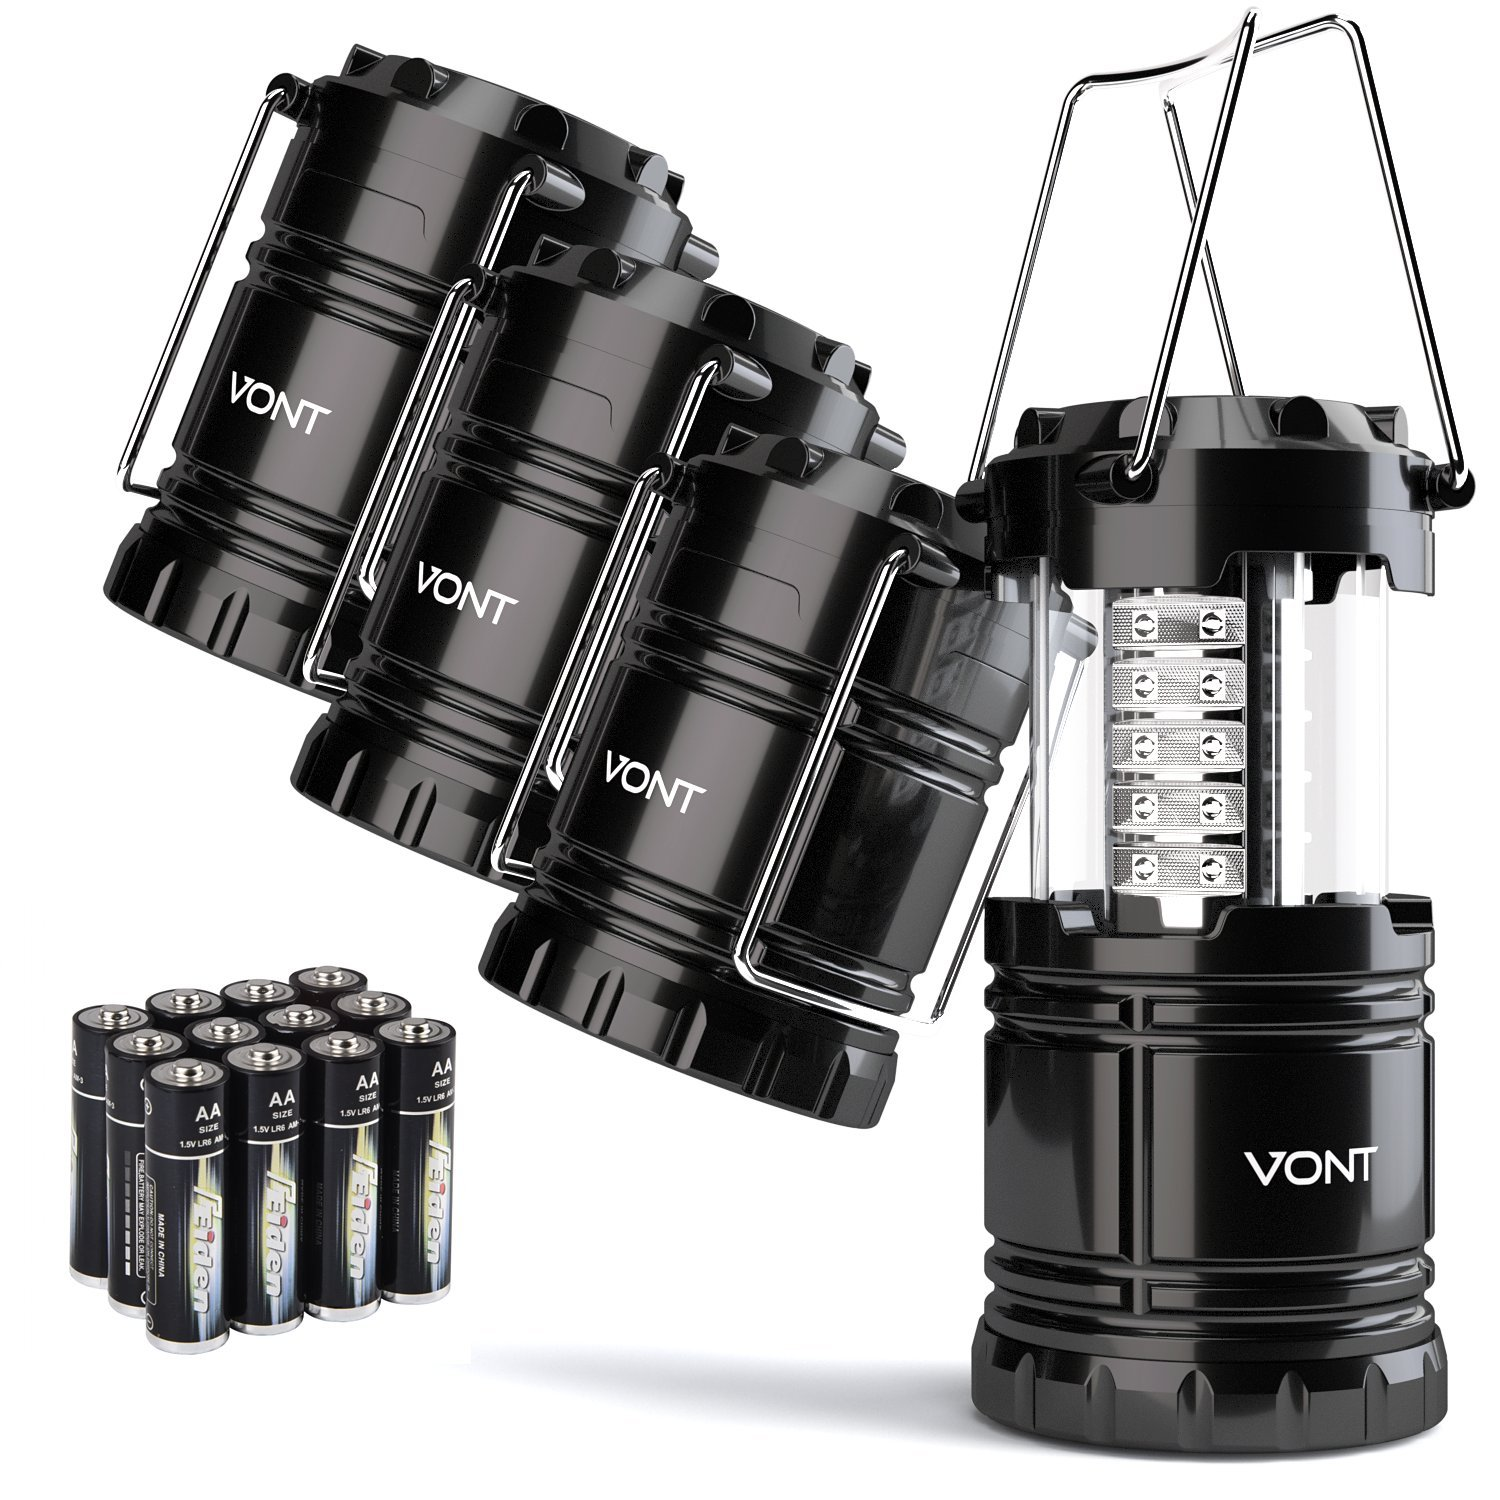 Vont 4 Pack LED Camping Lantern, Survival Kit for Hurricane, Emergency, Storm, Outages, Outdoor Portable Lanterns, Black, Collapsible (Batteries Included)